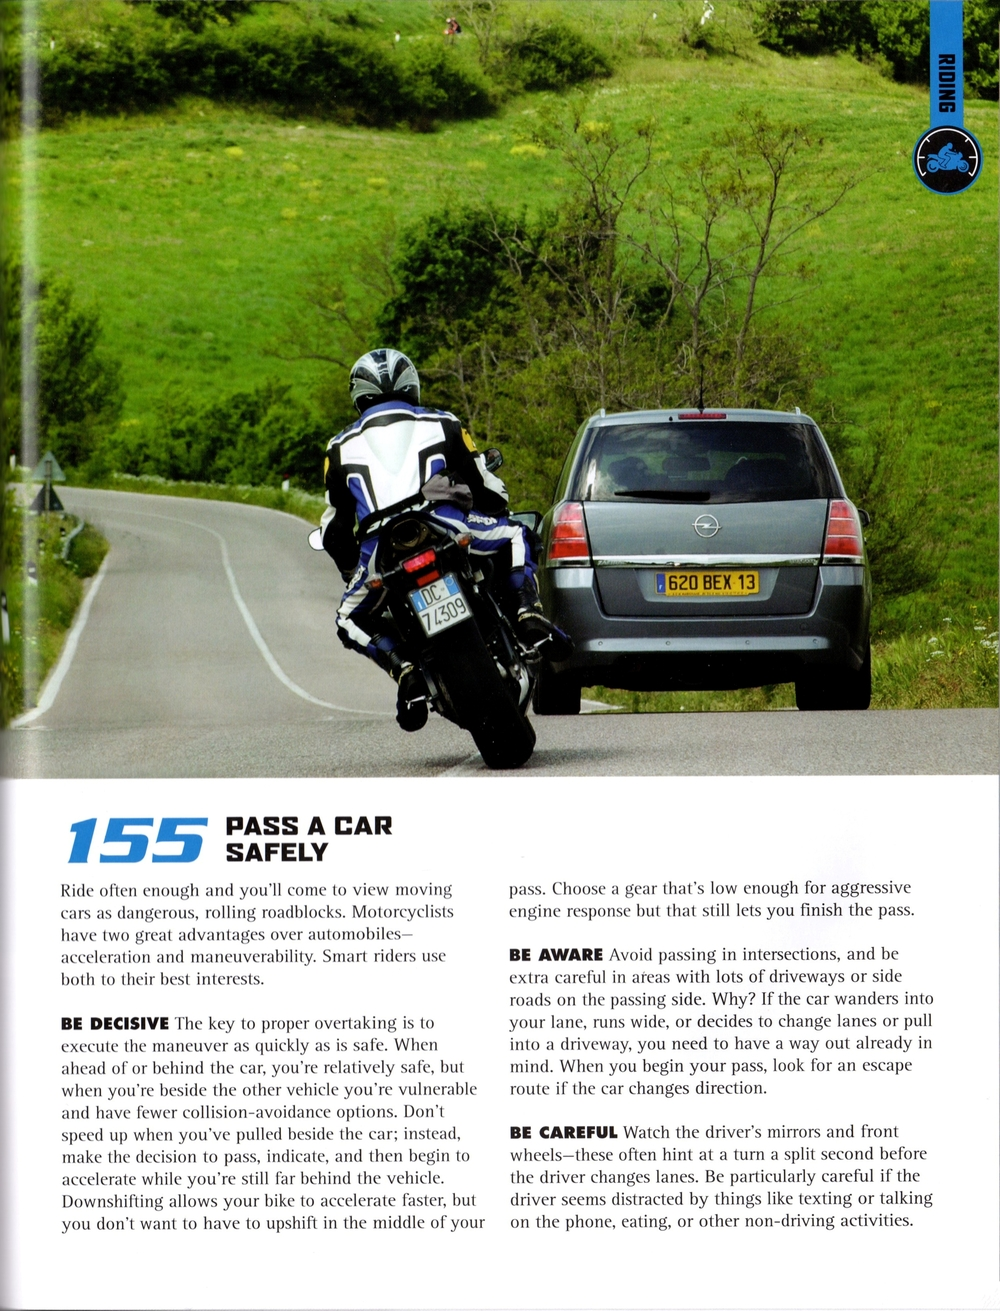 Cycle World - The Total Motorcycling Manual (Book)